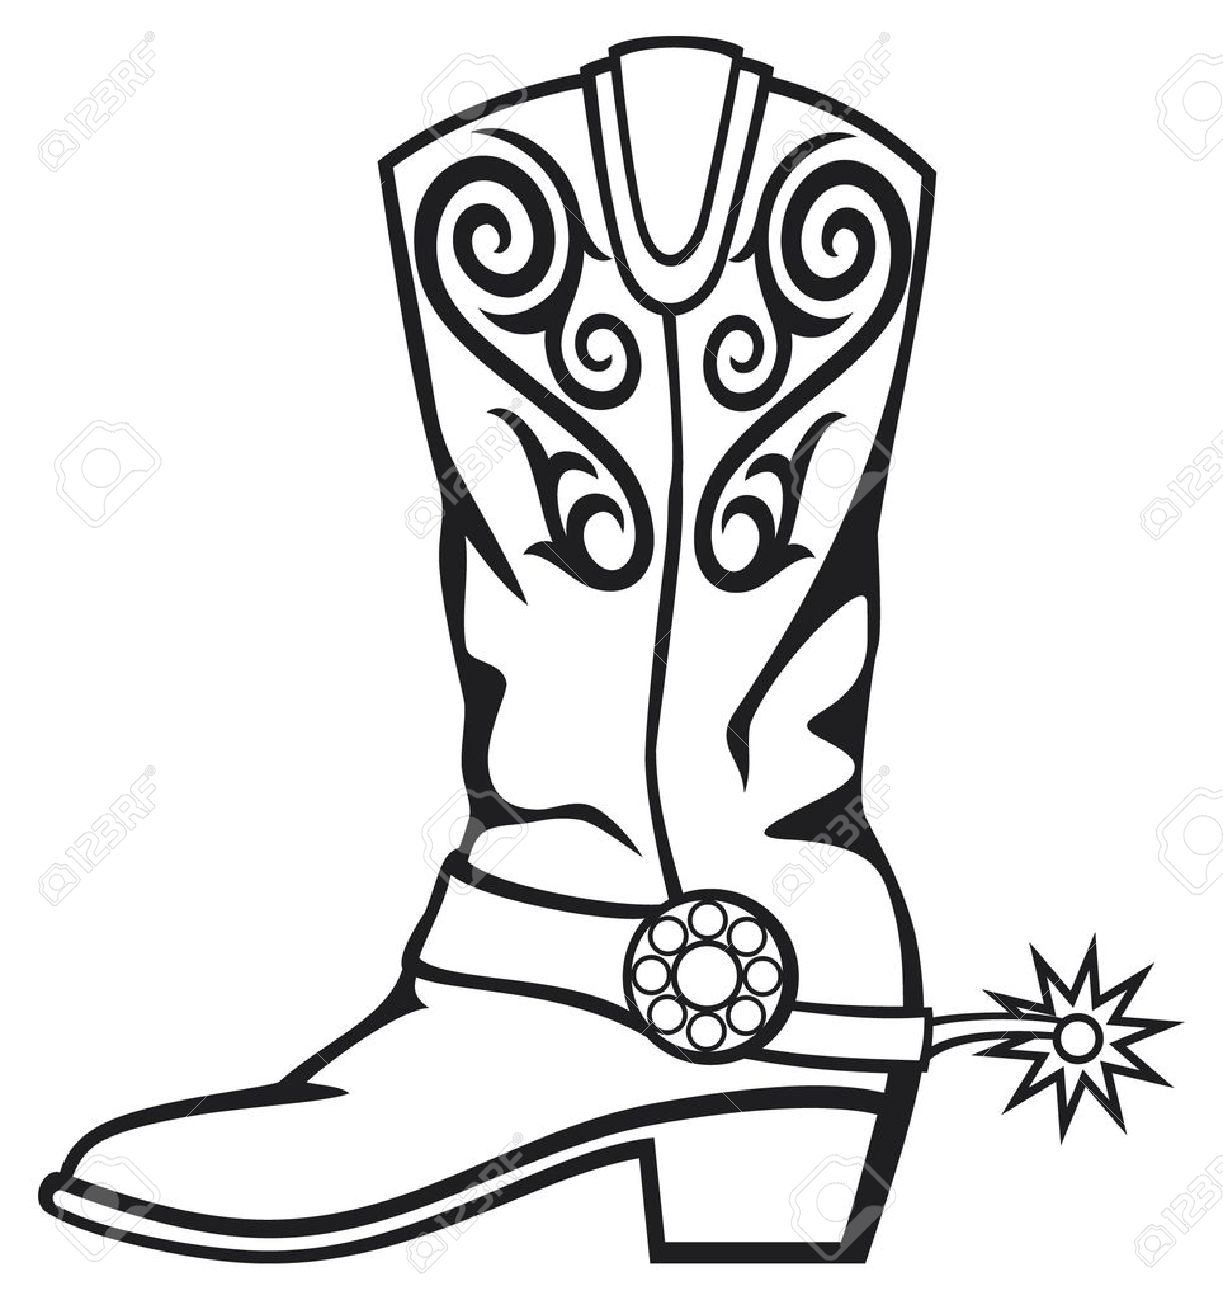 Cowboy boots clipart free banner free download 23+ Cowboy Boots Clip Art | ClipartLook banner free download